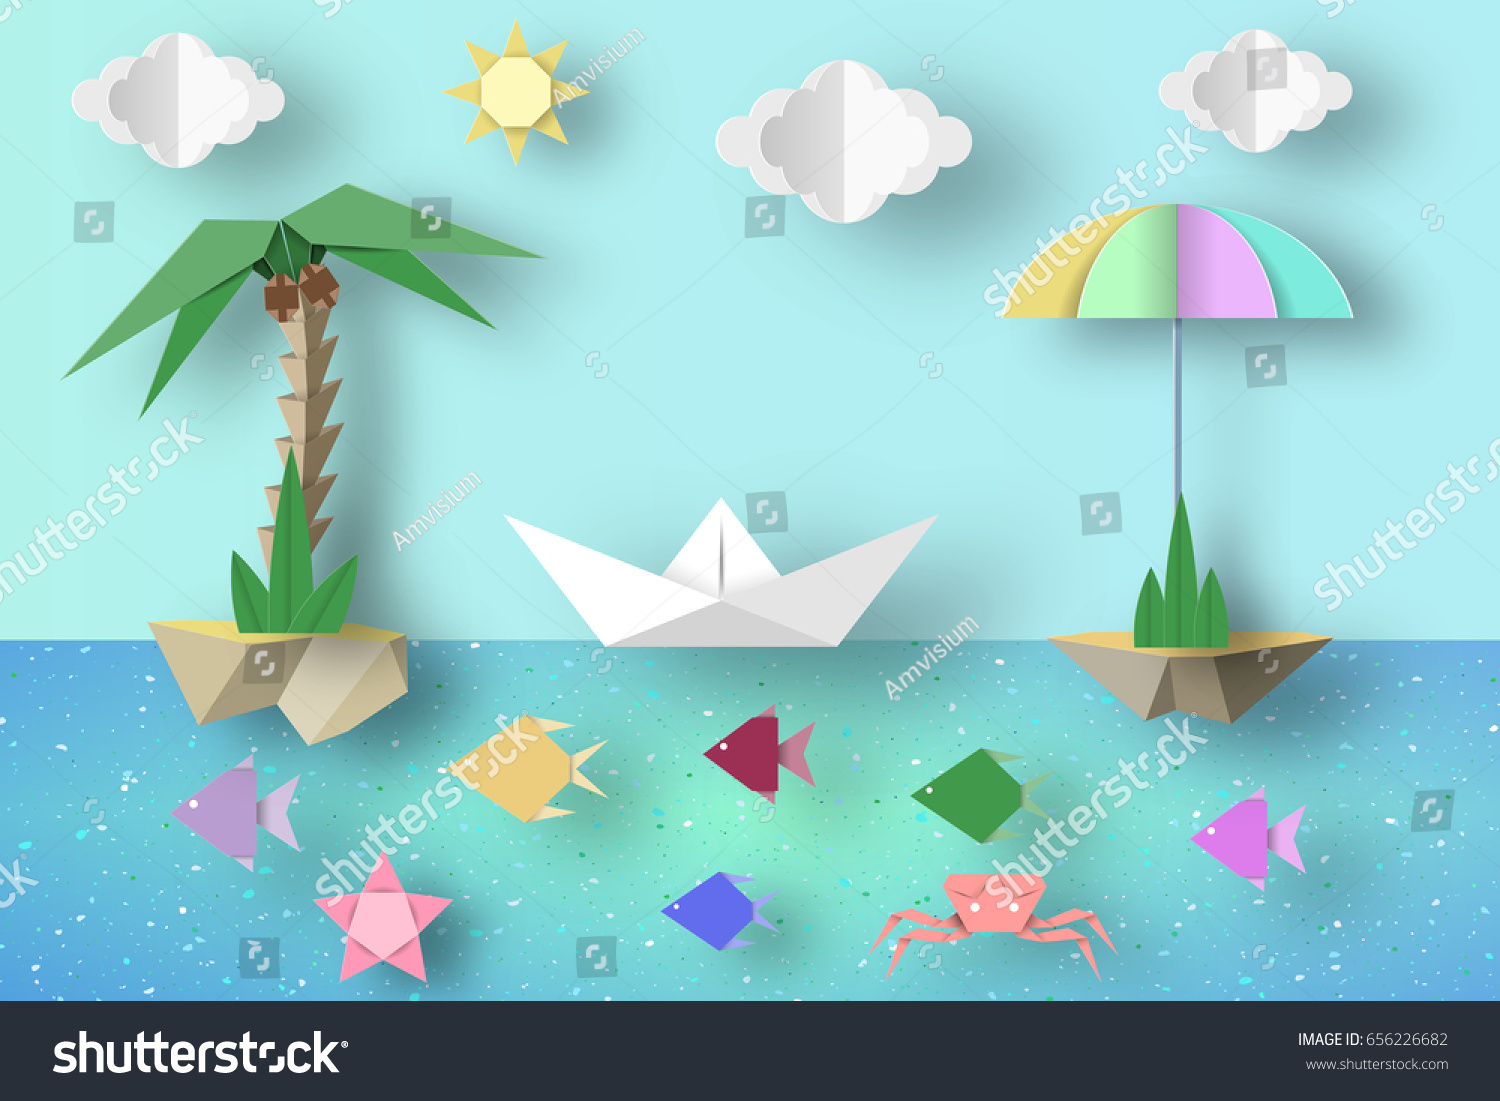 Summer origami fun art applique paper stock vector 656226682 summer origami fun art applique paper crafted cutout world composition with style elements and jeuxipadfo Image collections